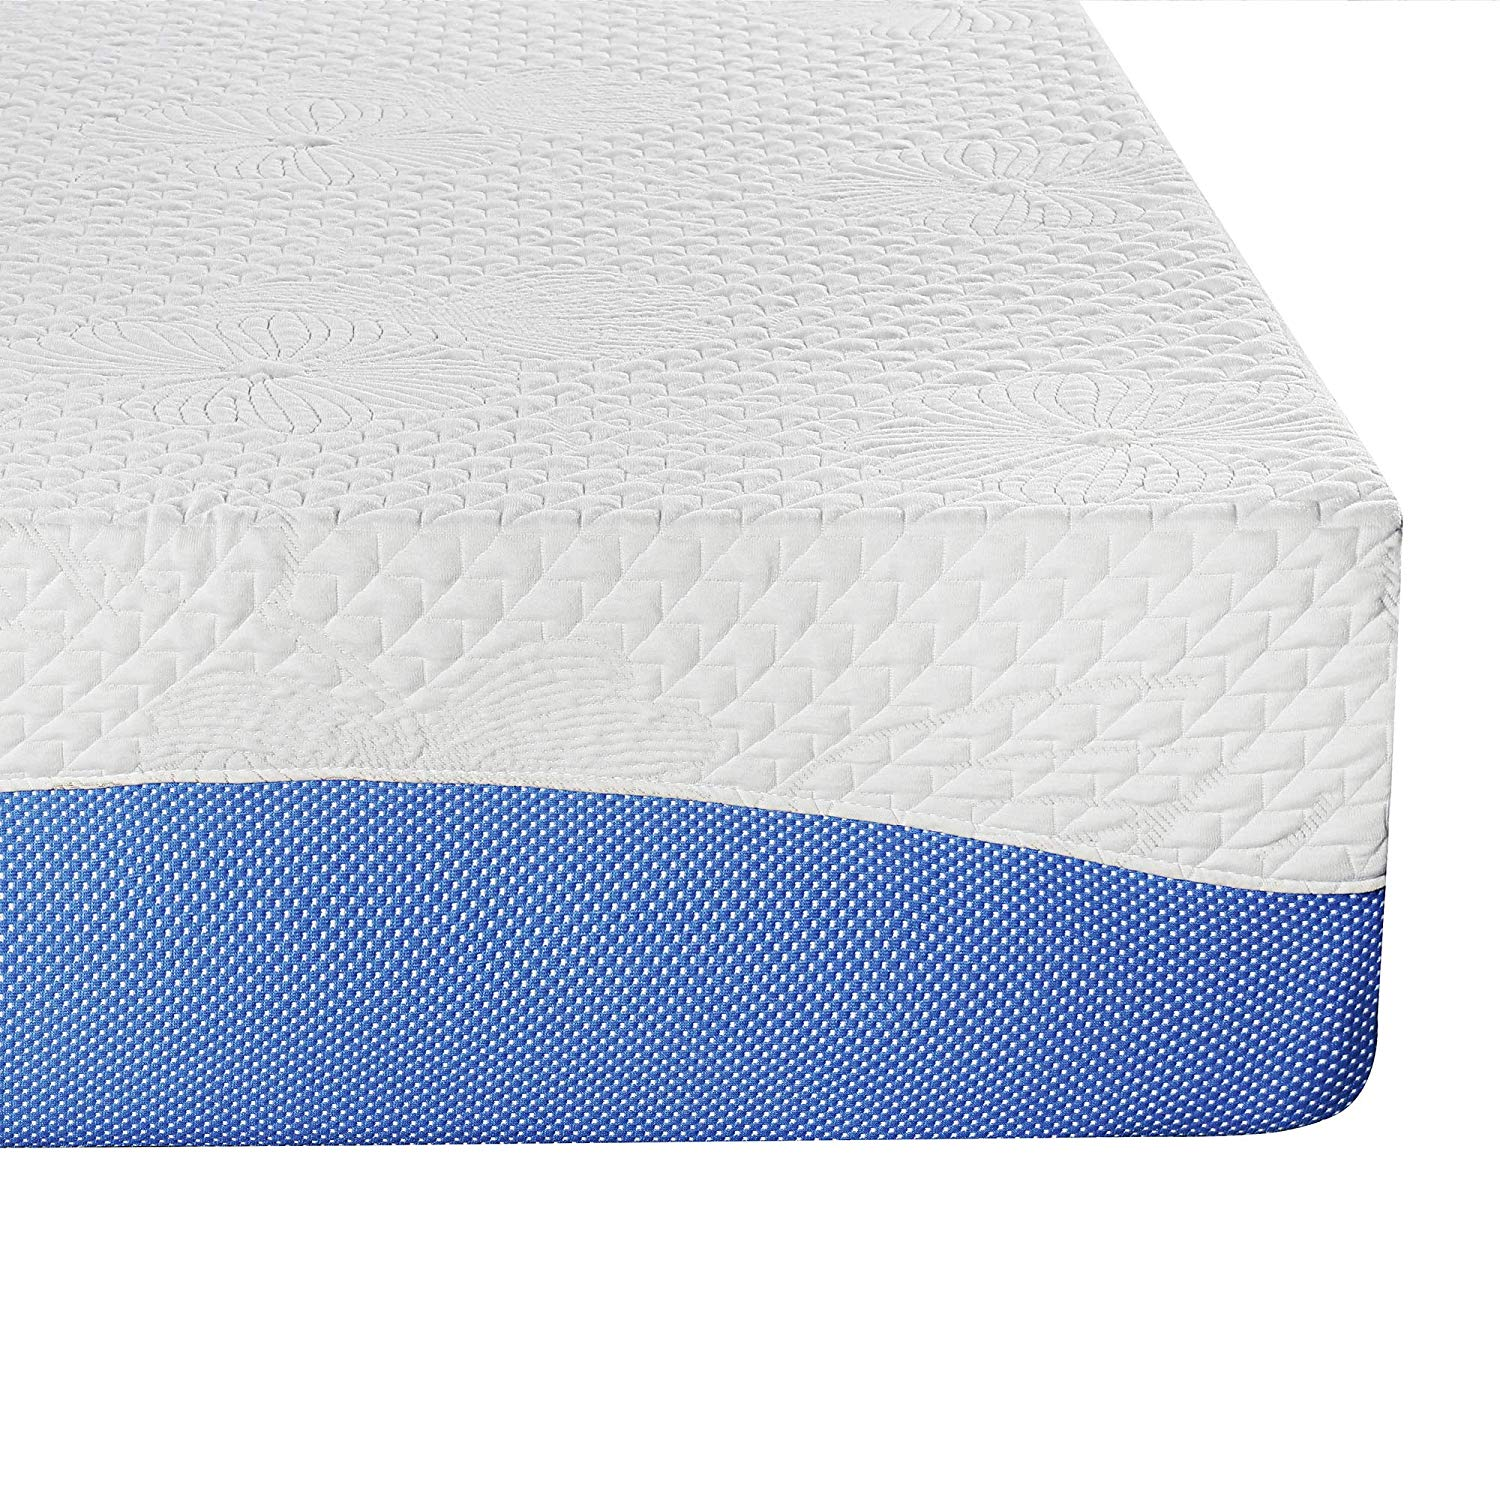 Olee Sleep 10 Inch Gel Infused Layer Top Memory Foam